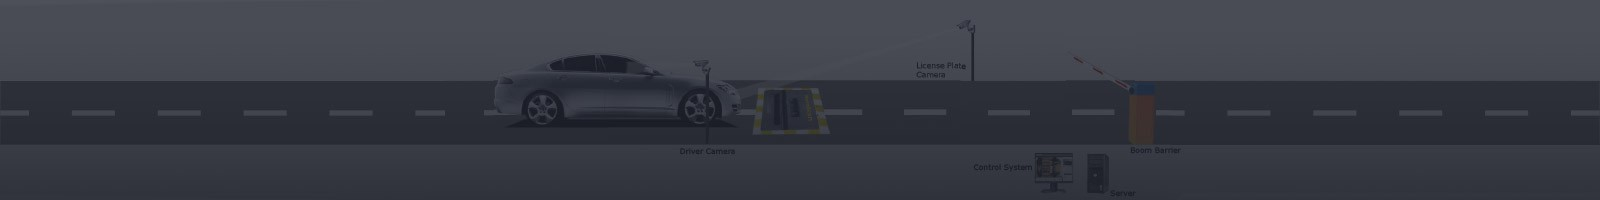 NuvoScan® (E) - Automated Under Vehicle Scanning System